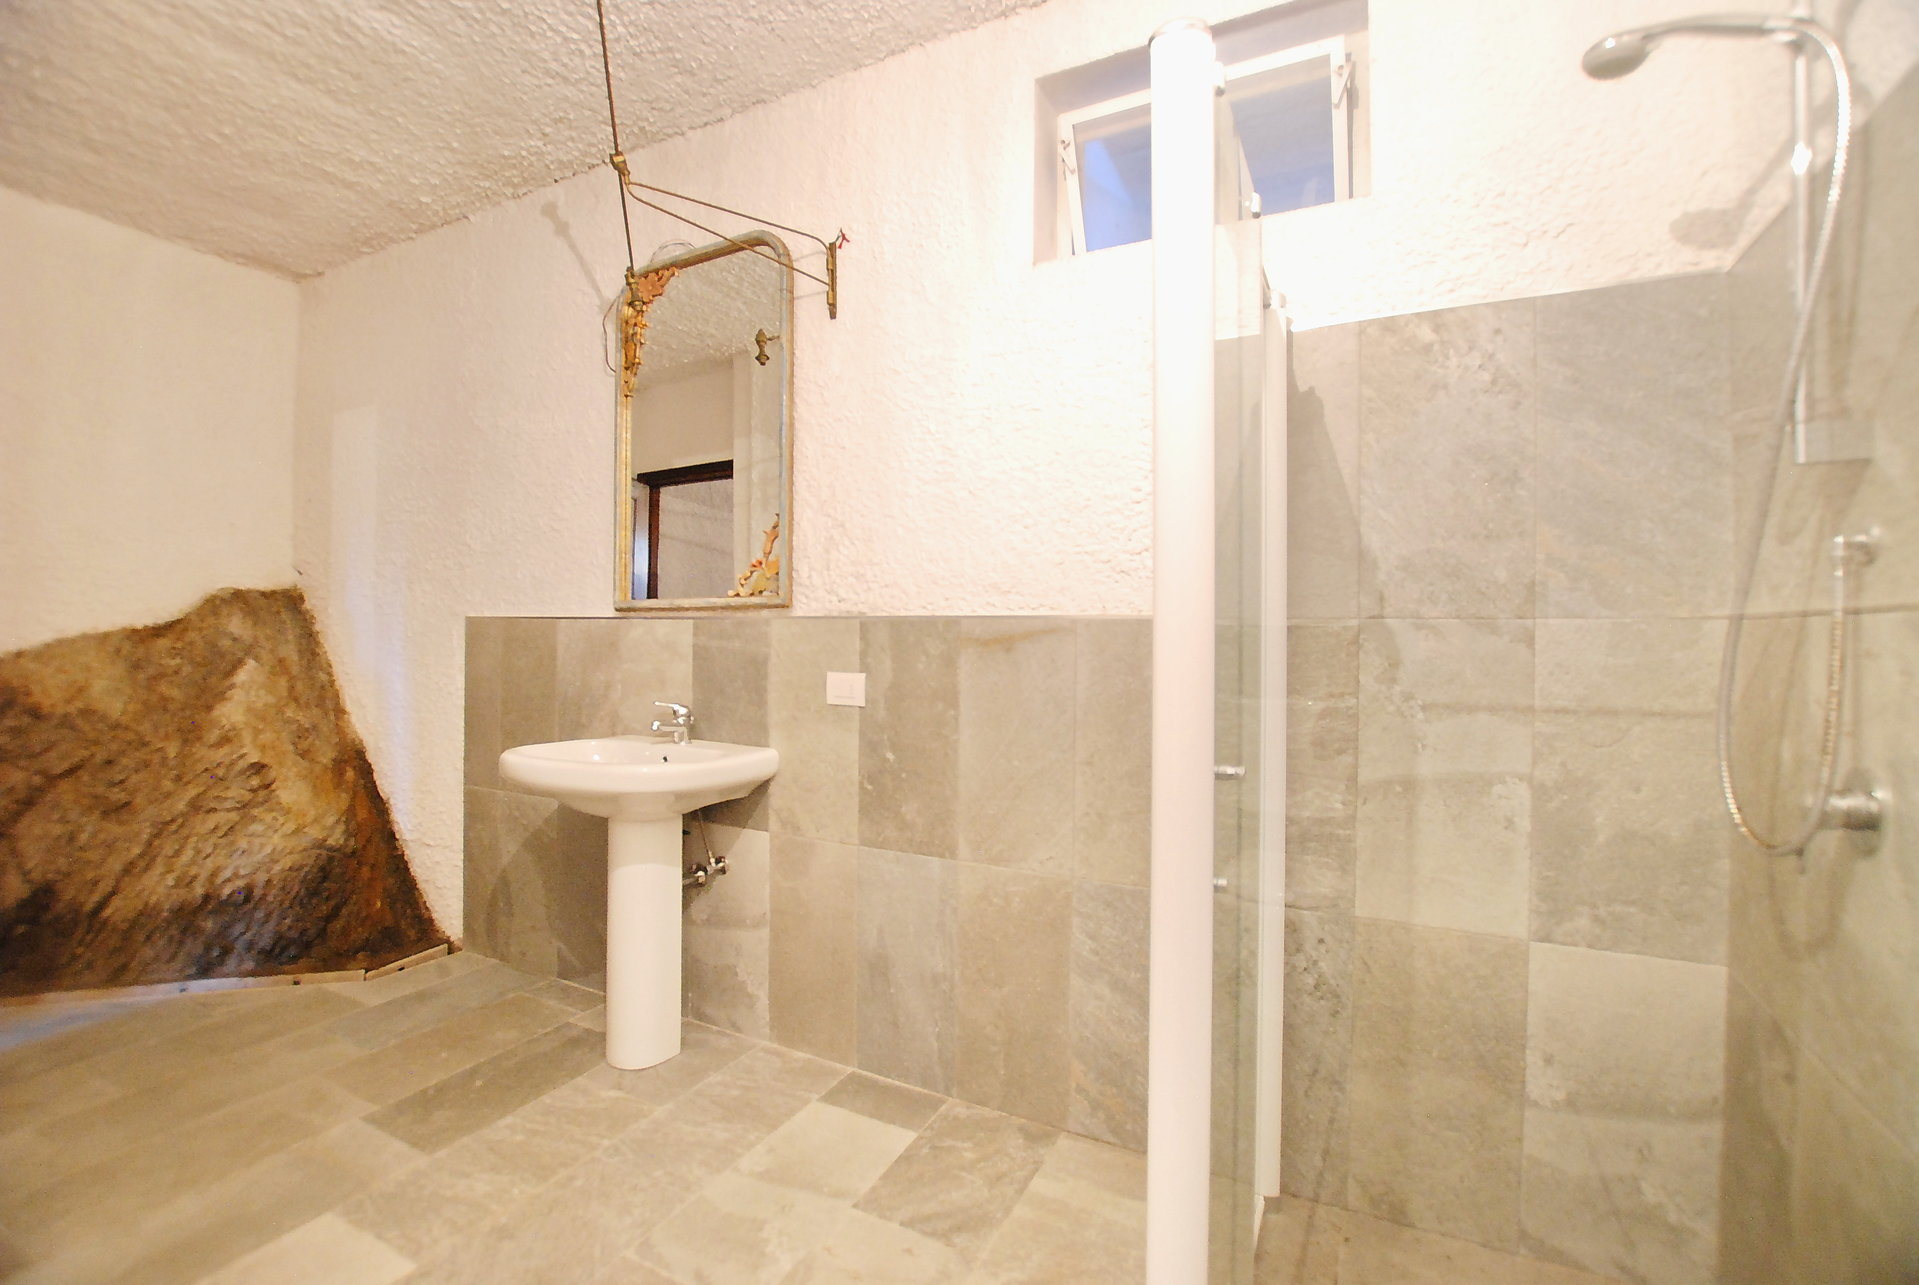 Historic villa with guesthouse and land for sale in Verbania - bathroom with shower